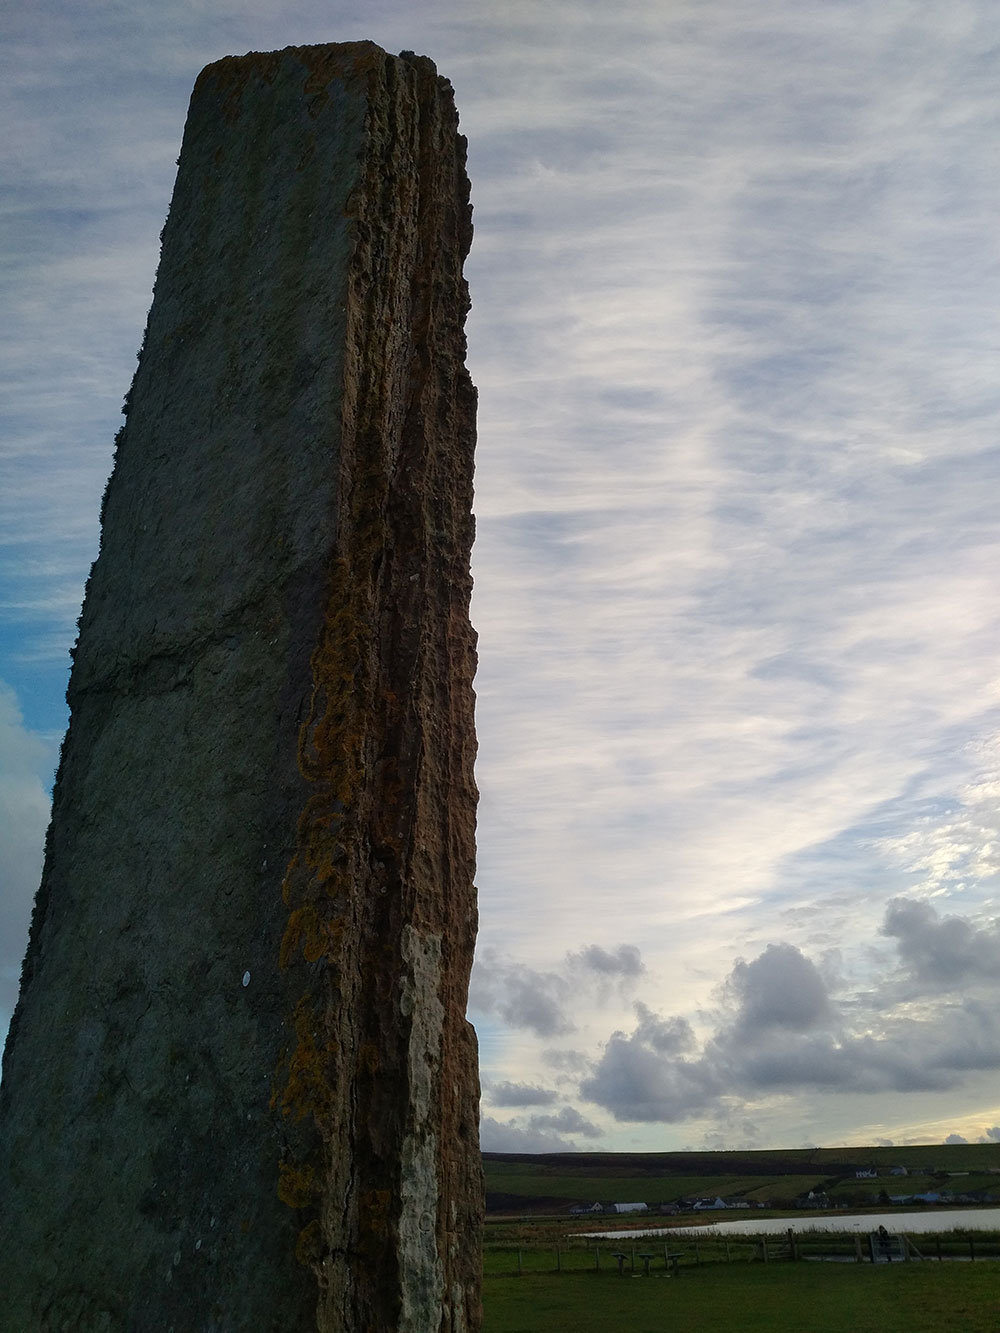 The Standing Stones of Stenness, a Neolithic monument on the Orkney mainland